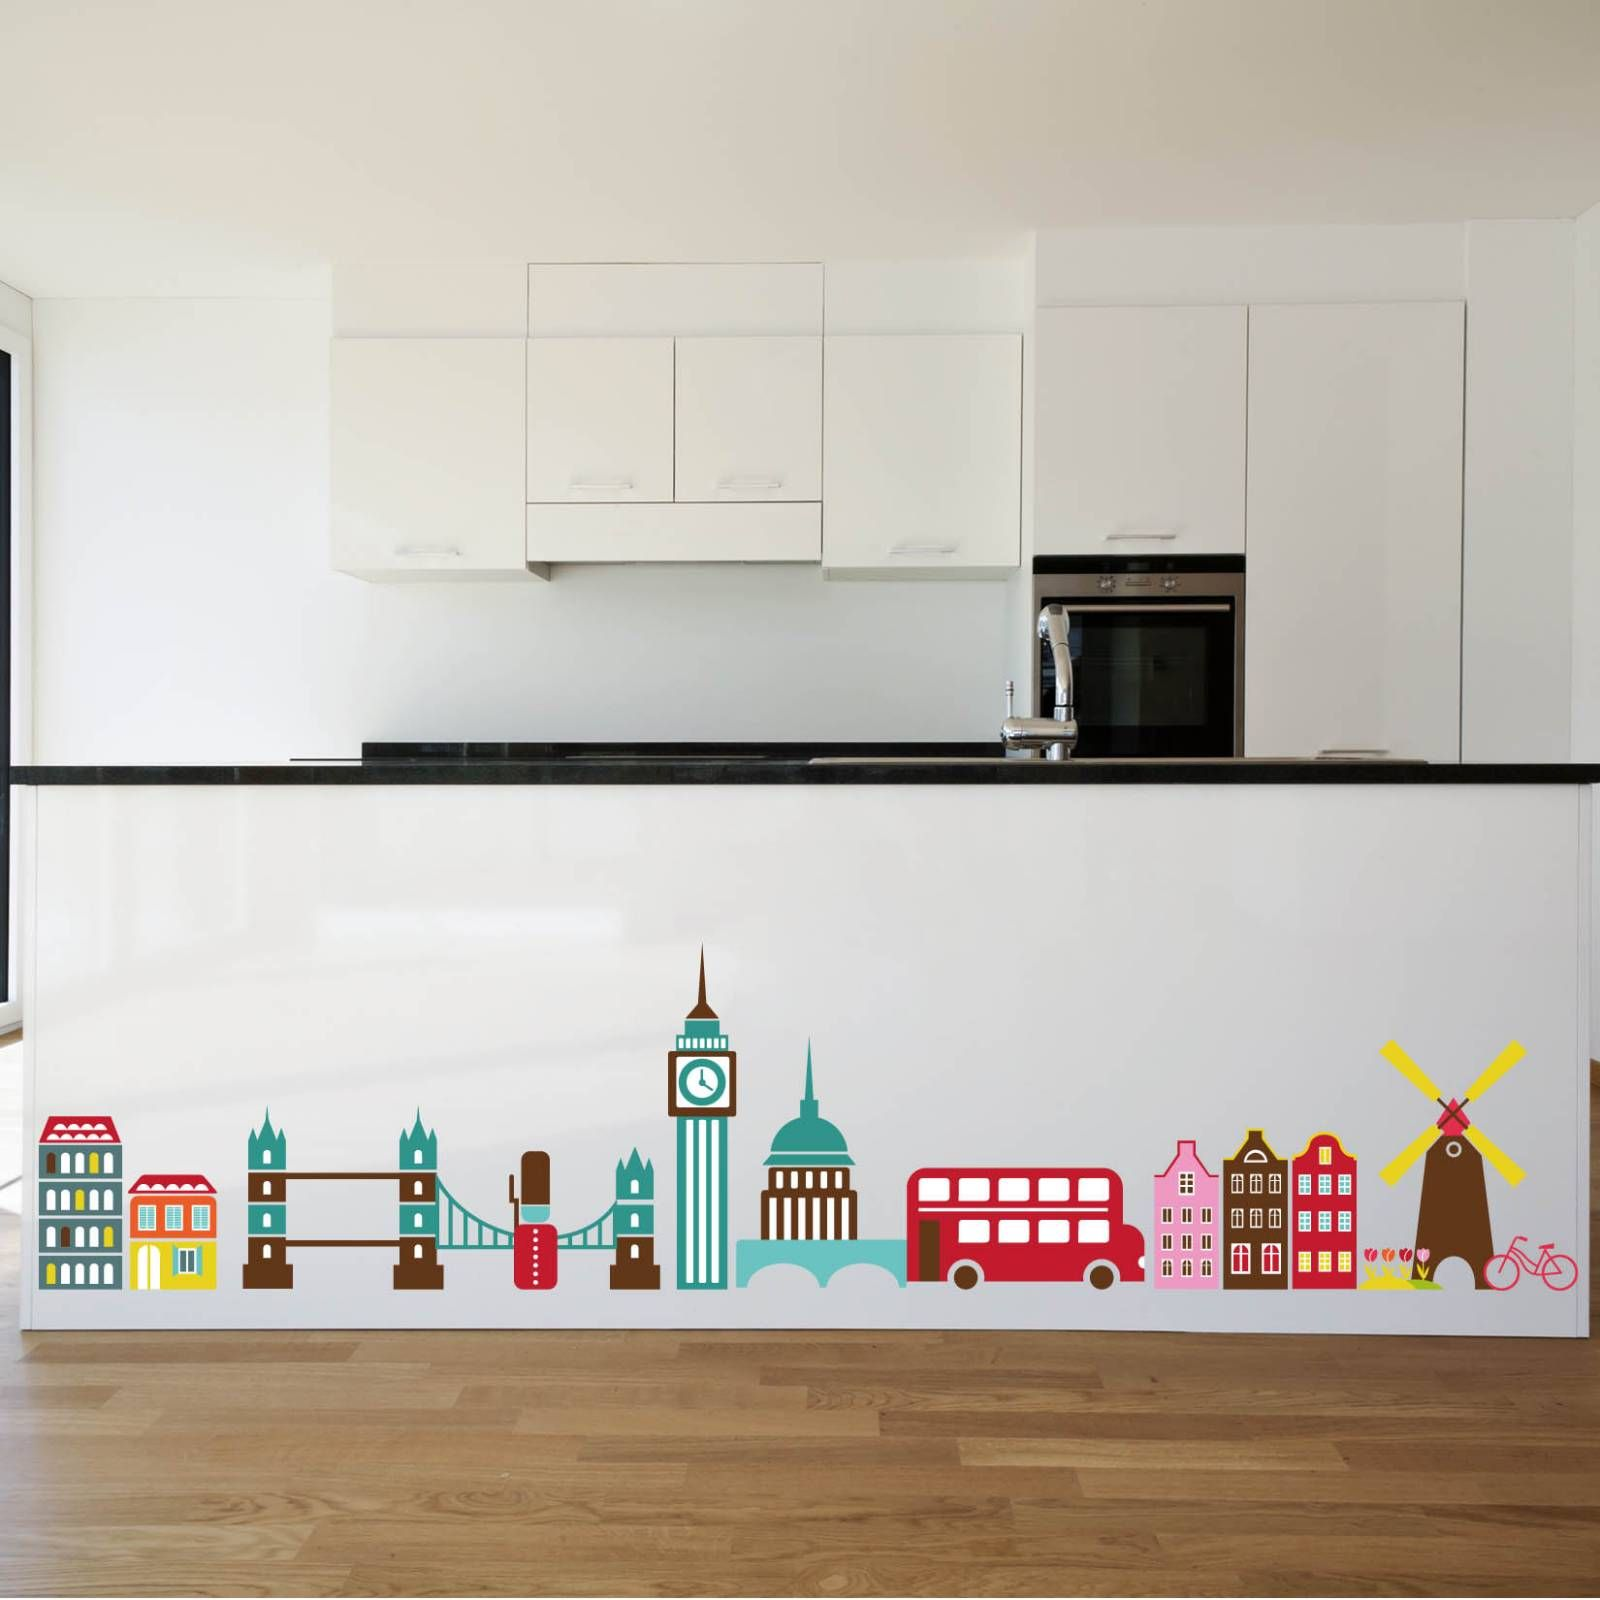 London Skyline Wall Sticker Stickers Places Singapore Home Design